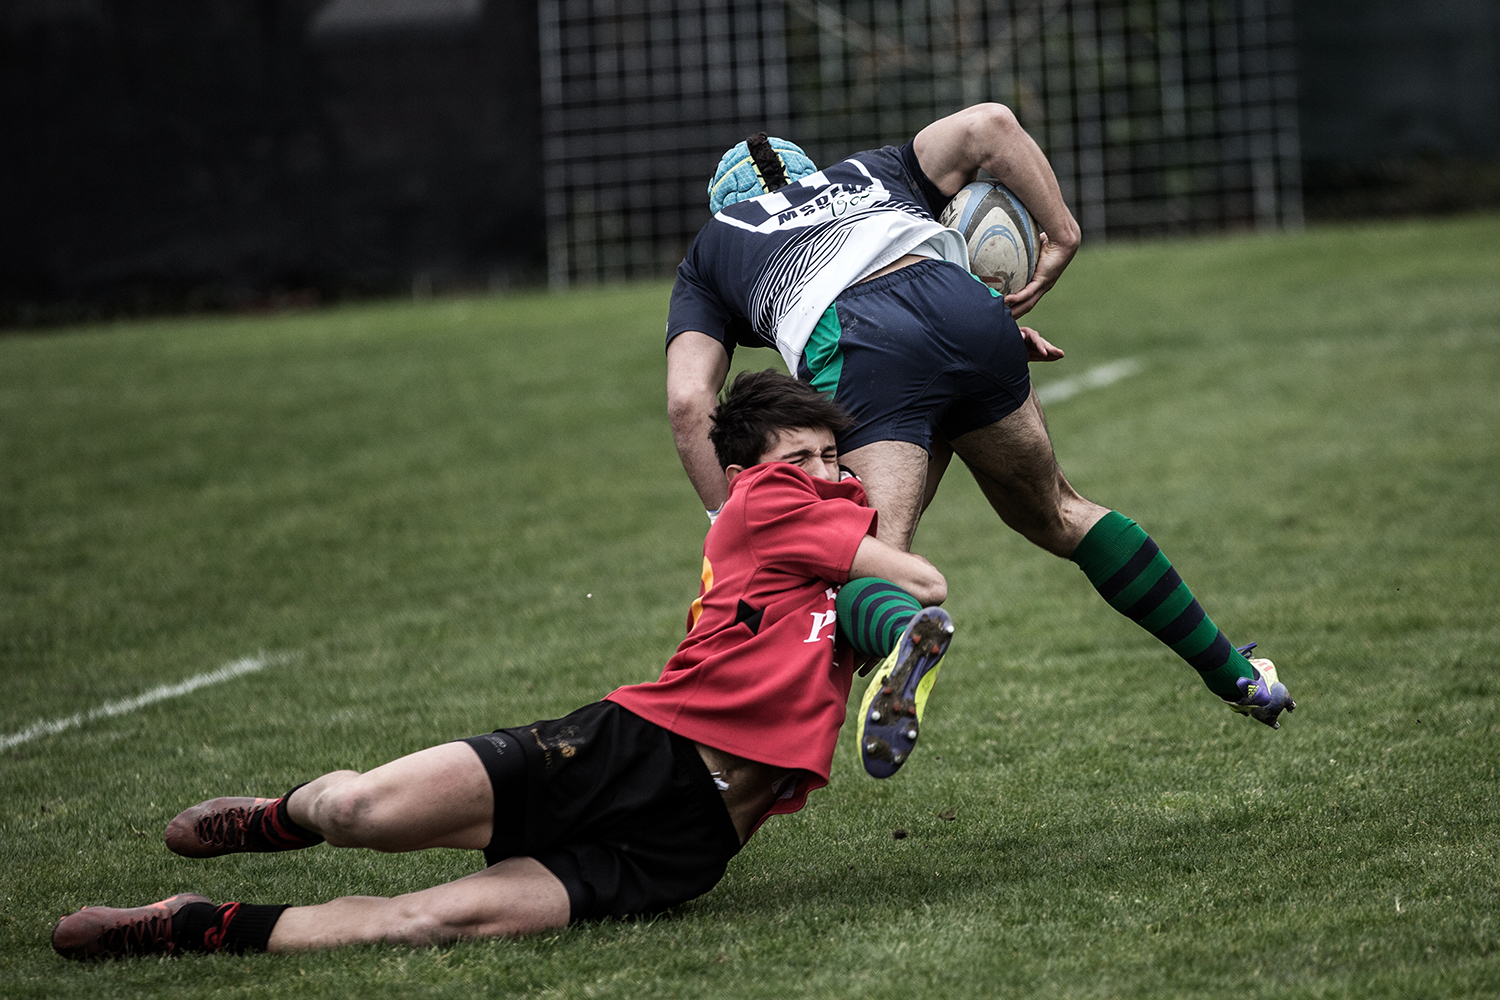 rugby_photograph_38.jpg